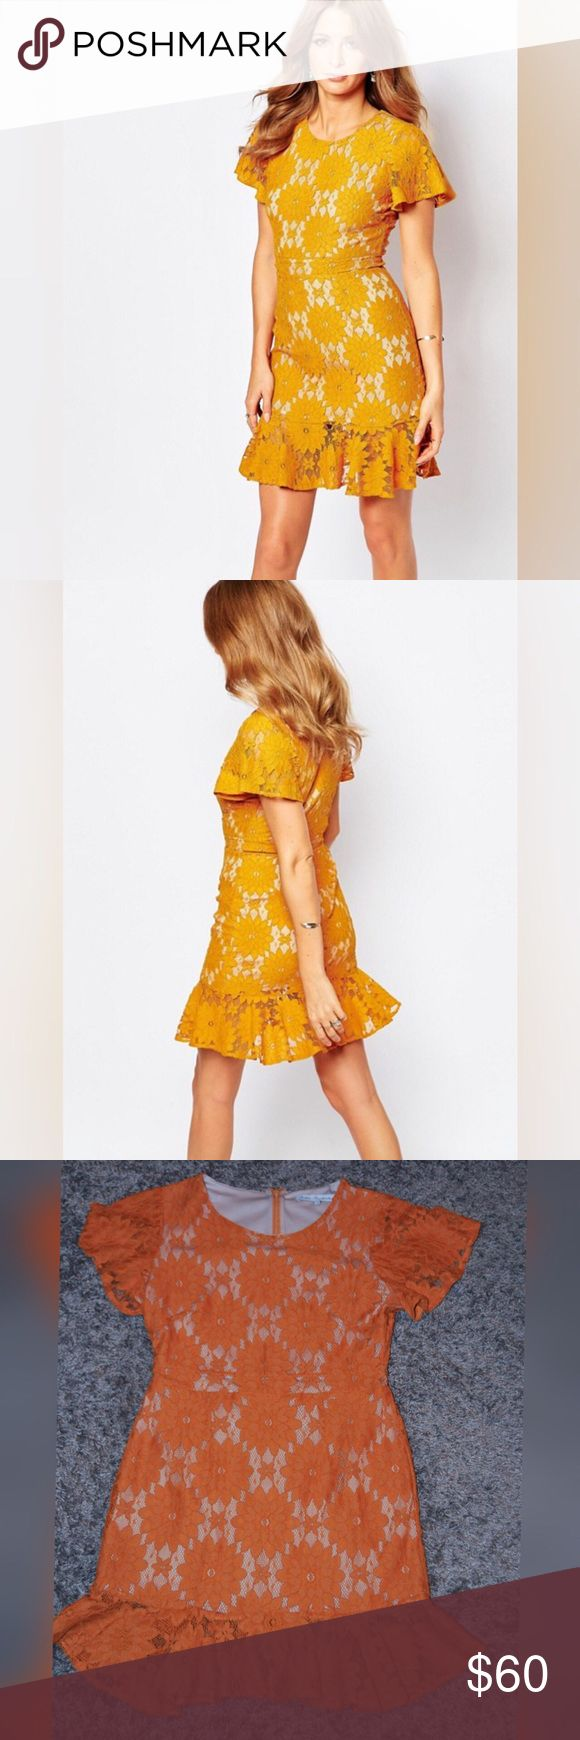 Millie Mackintosh Lace Pep Hem Dress in Mustard Textured floral lace with nude lining. Worn once. Millie Mackintosh Dresses